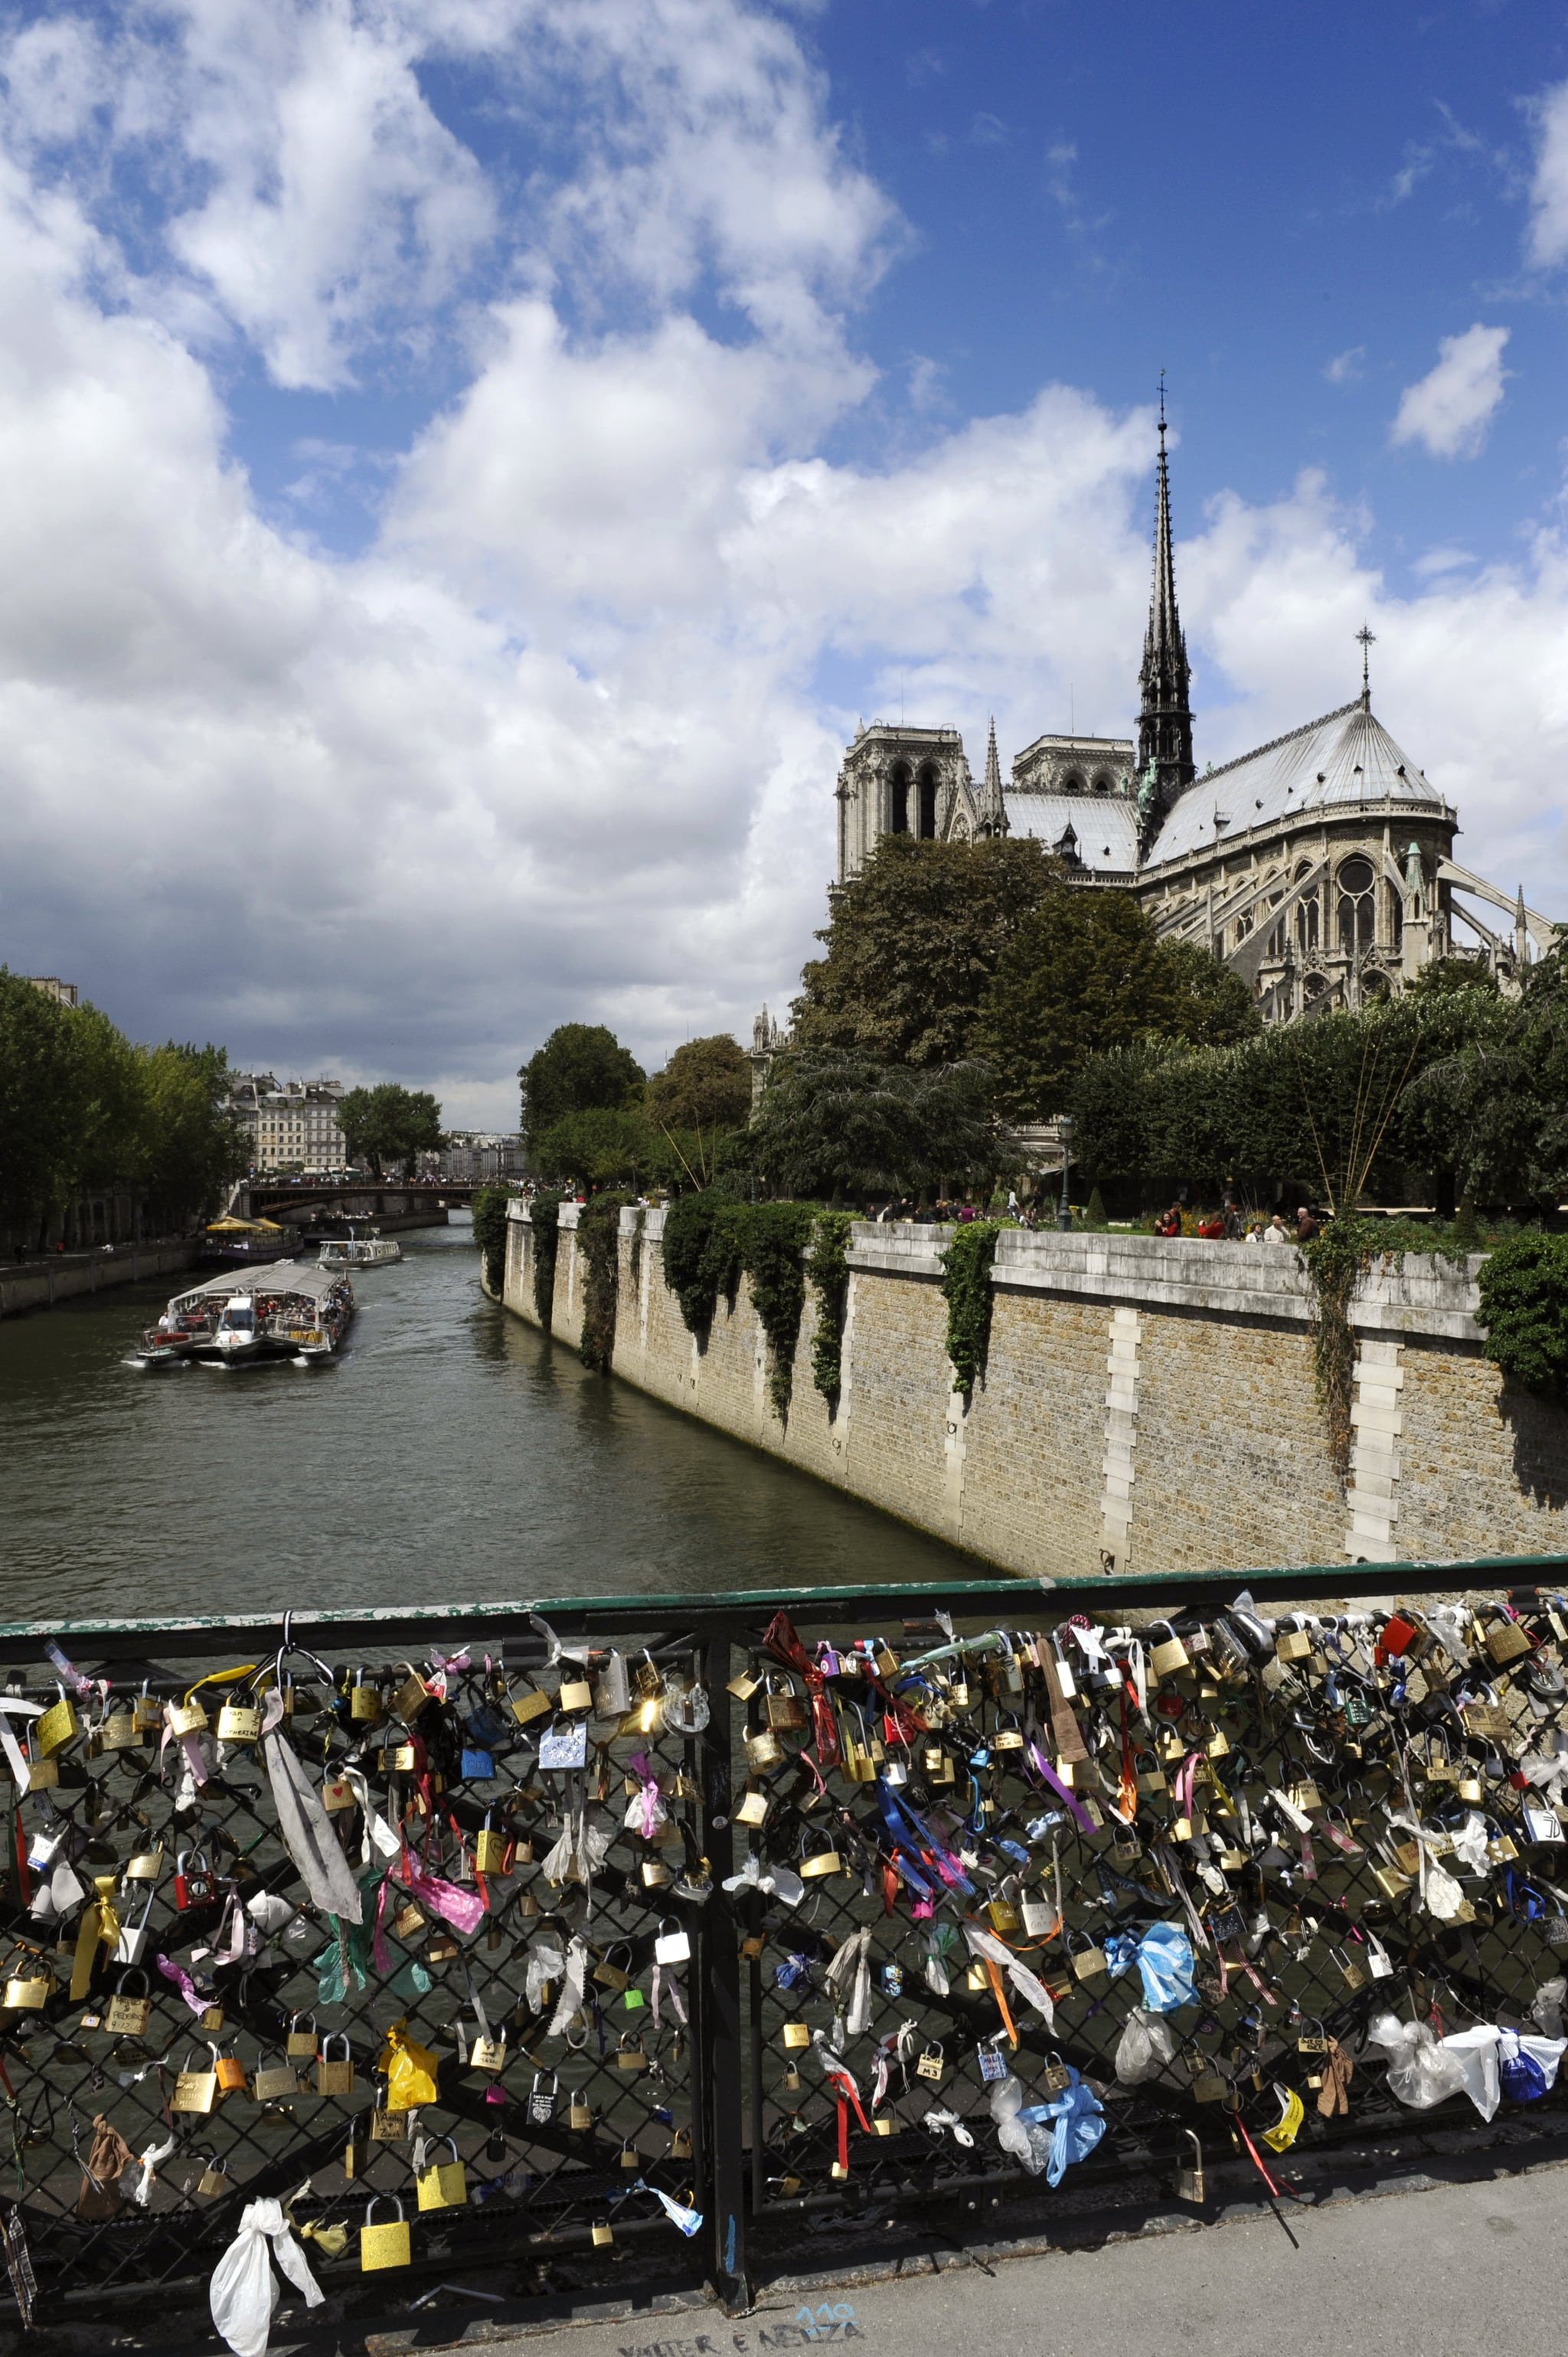 Love locks were affixed to the Pont des Arts bridge in front of the Notre Dame cathedral in Paris.